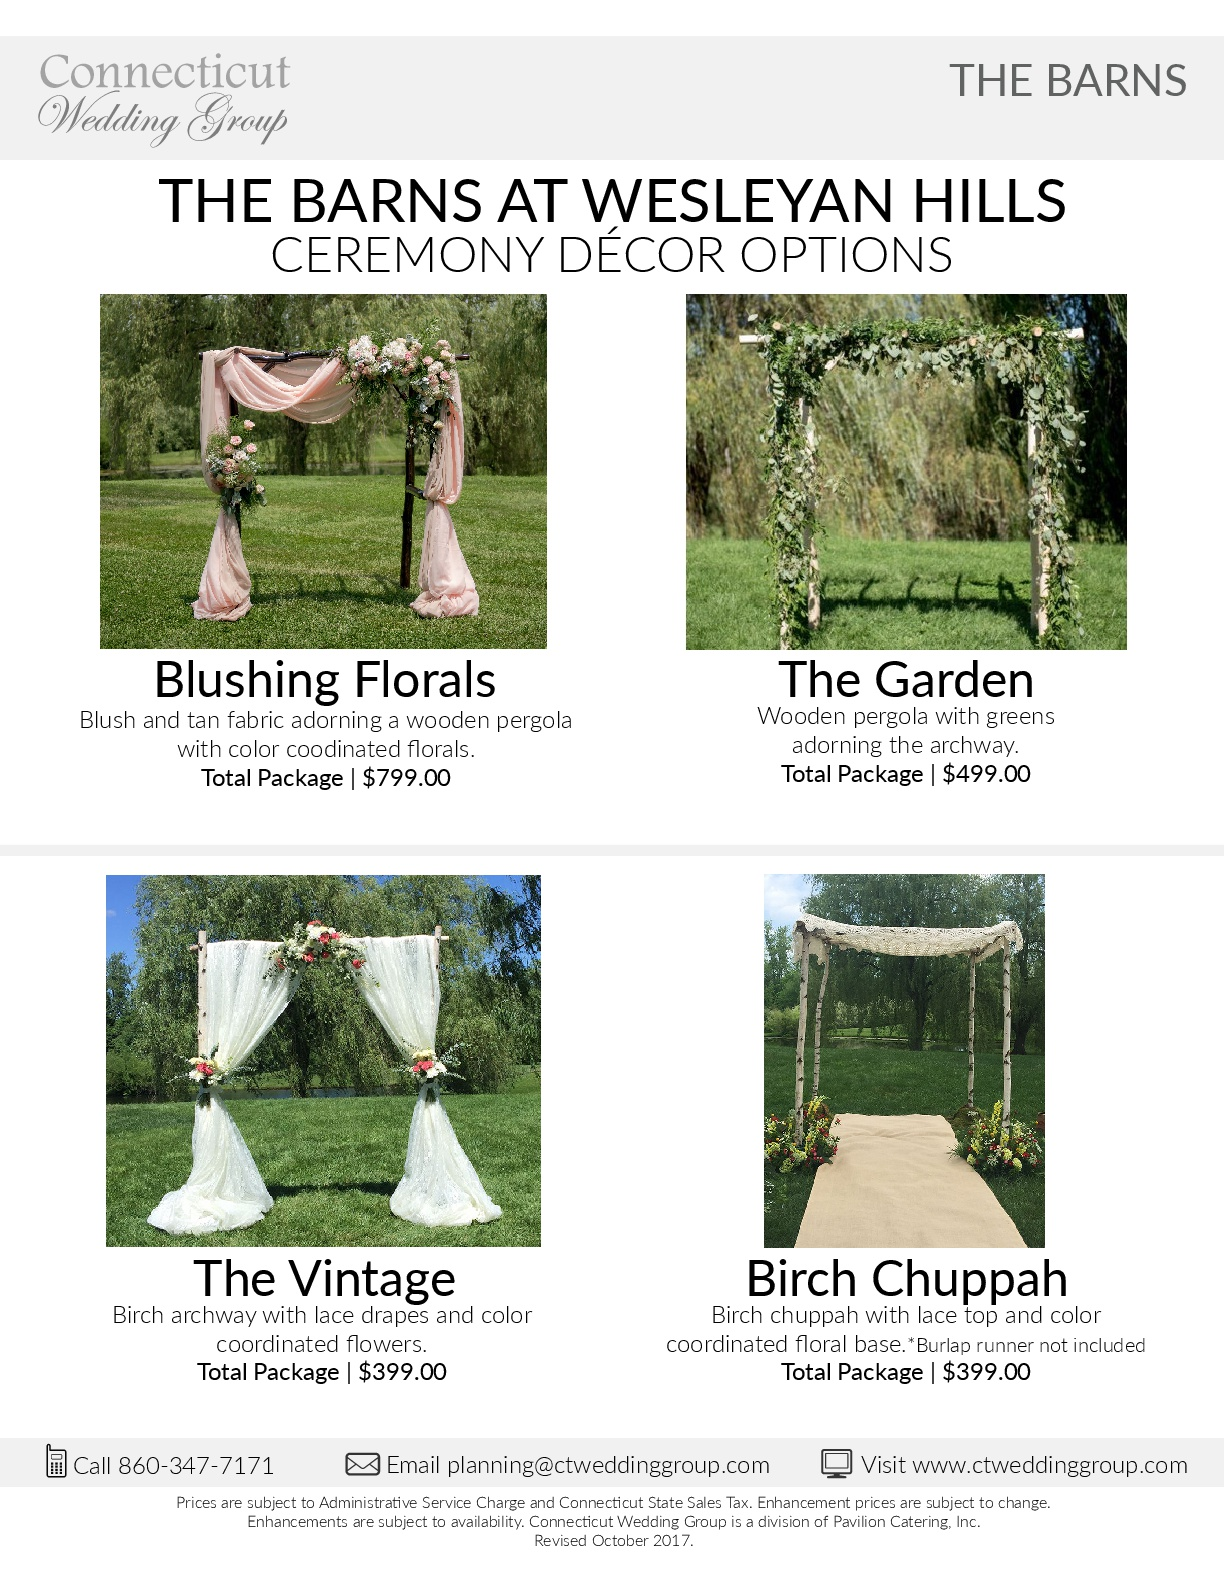 Barns-at-Wesleyan-Hills-Ceremony-Decor-Packages_2018-001